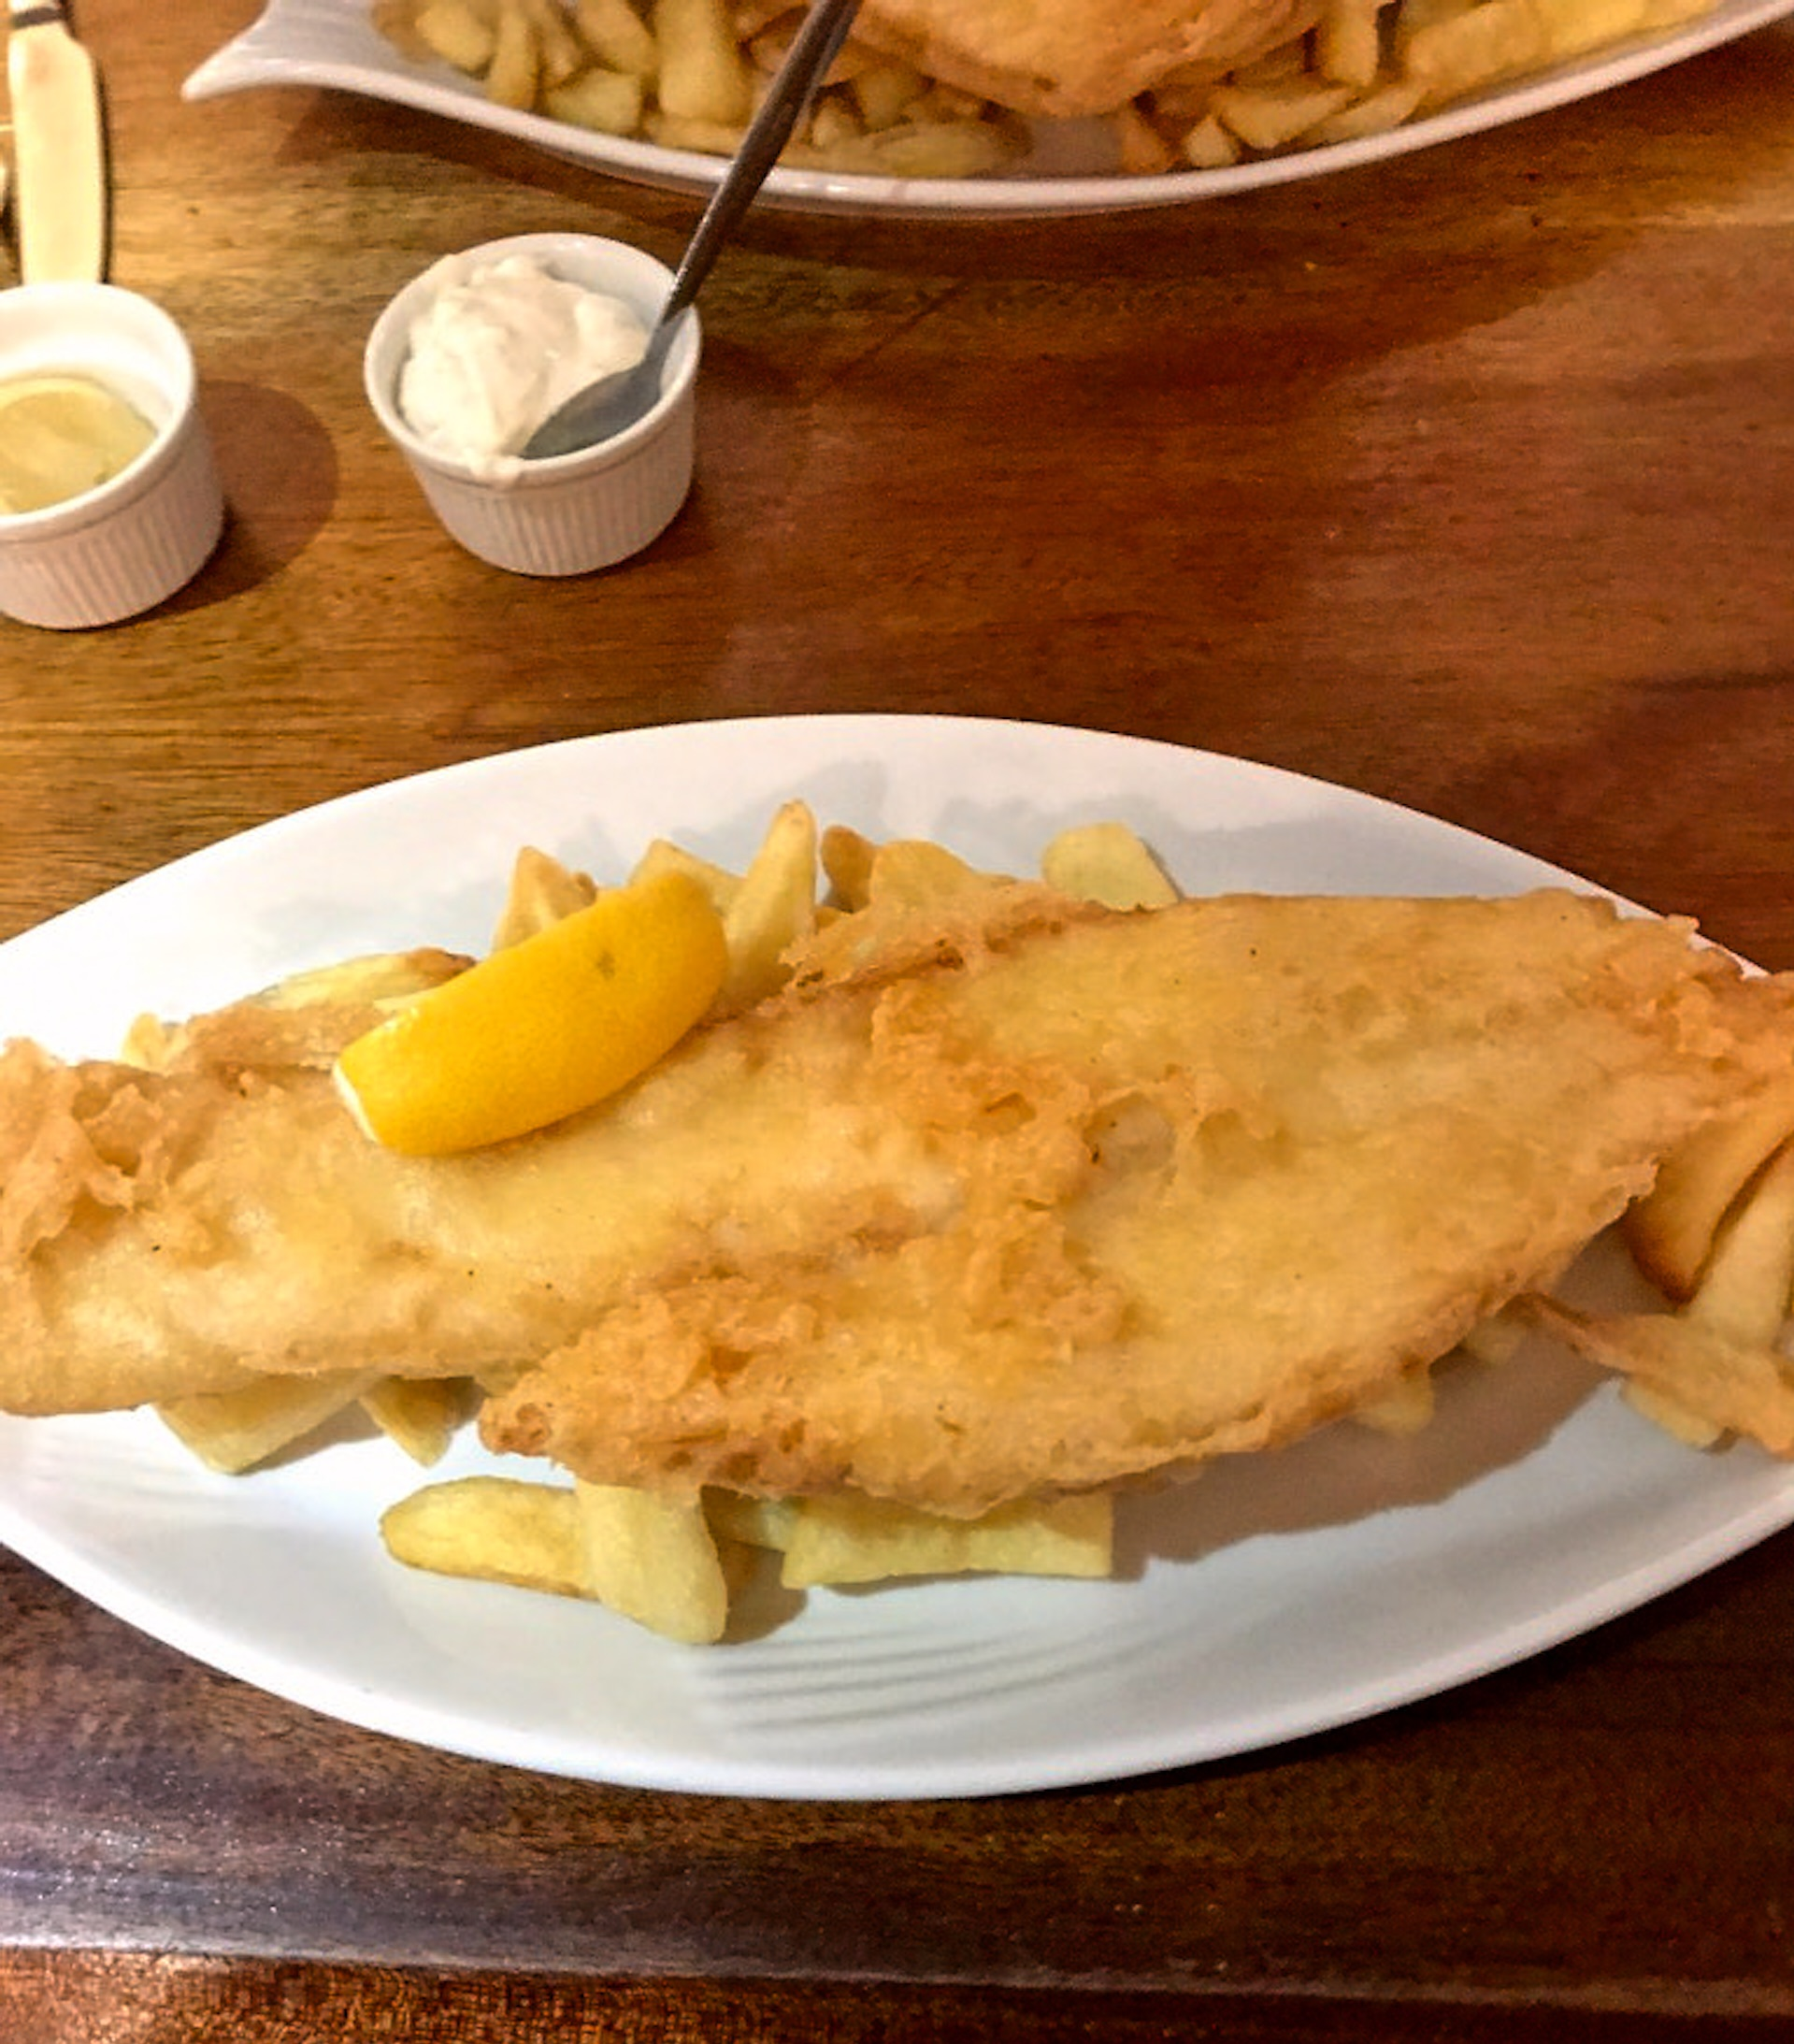 Fish+and+chips.jpg